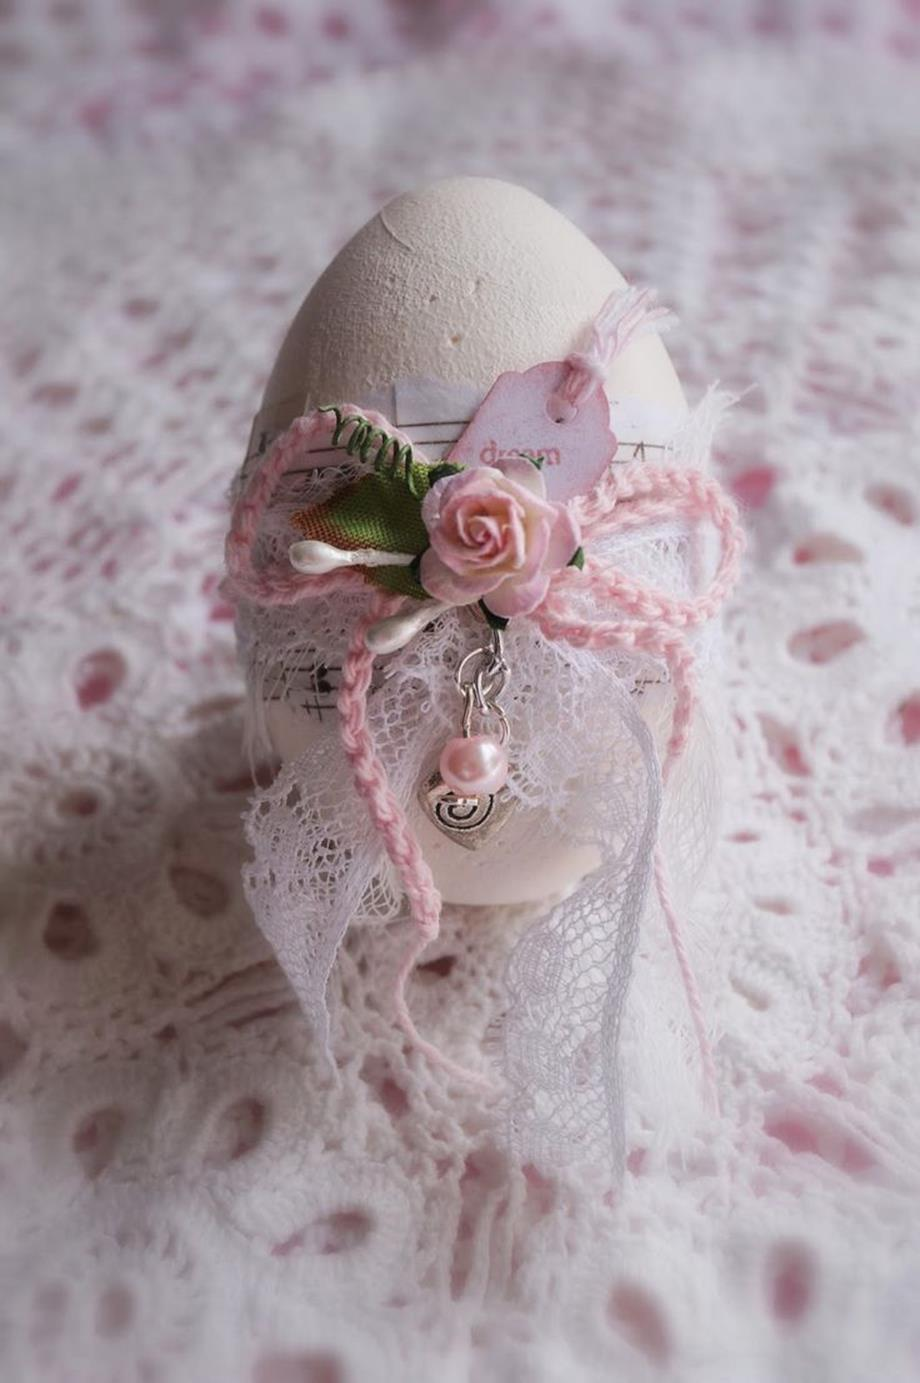 DIY Easy Shabby Chic Arts and Crafts Ideas 4